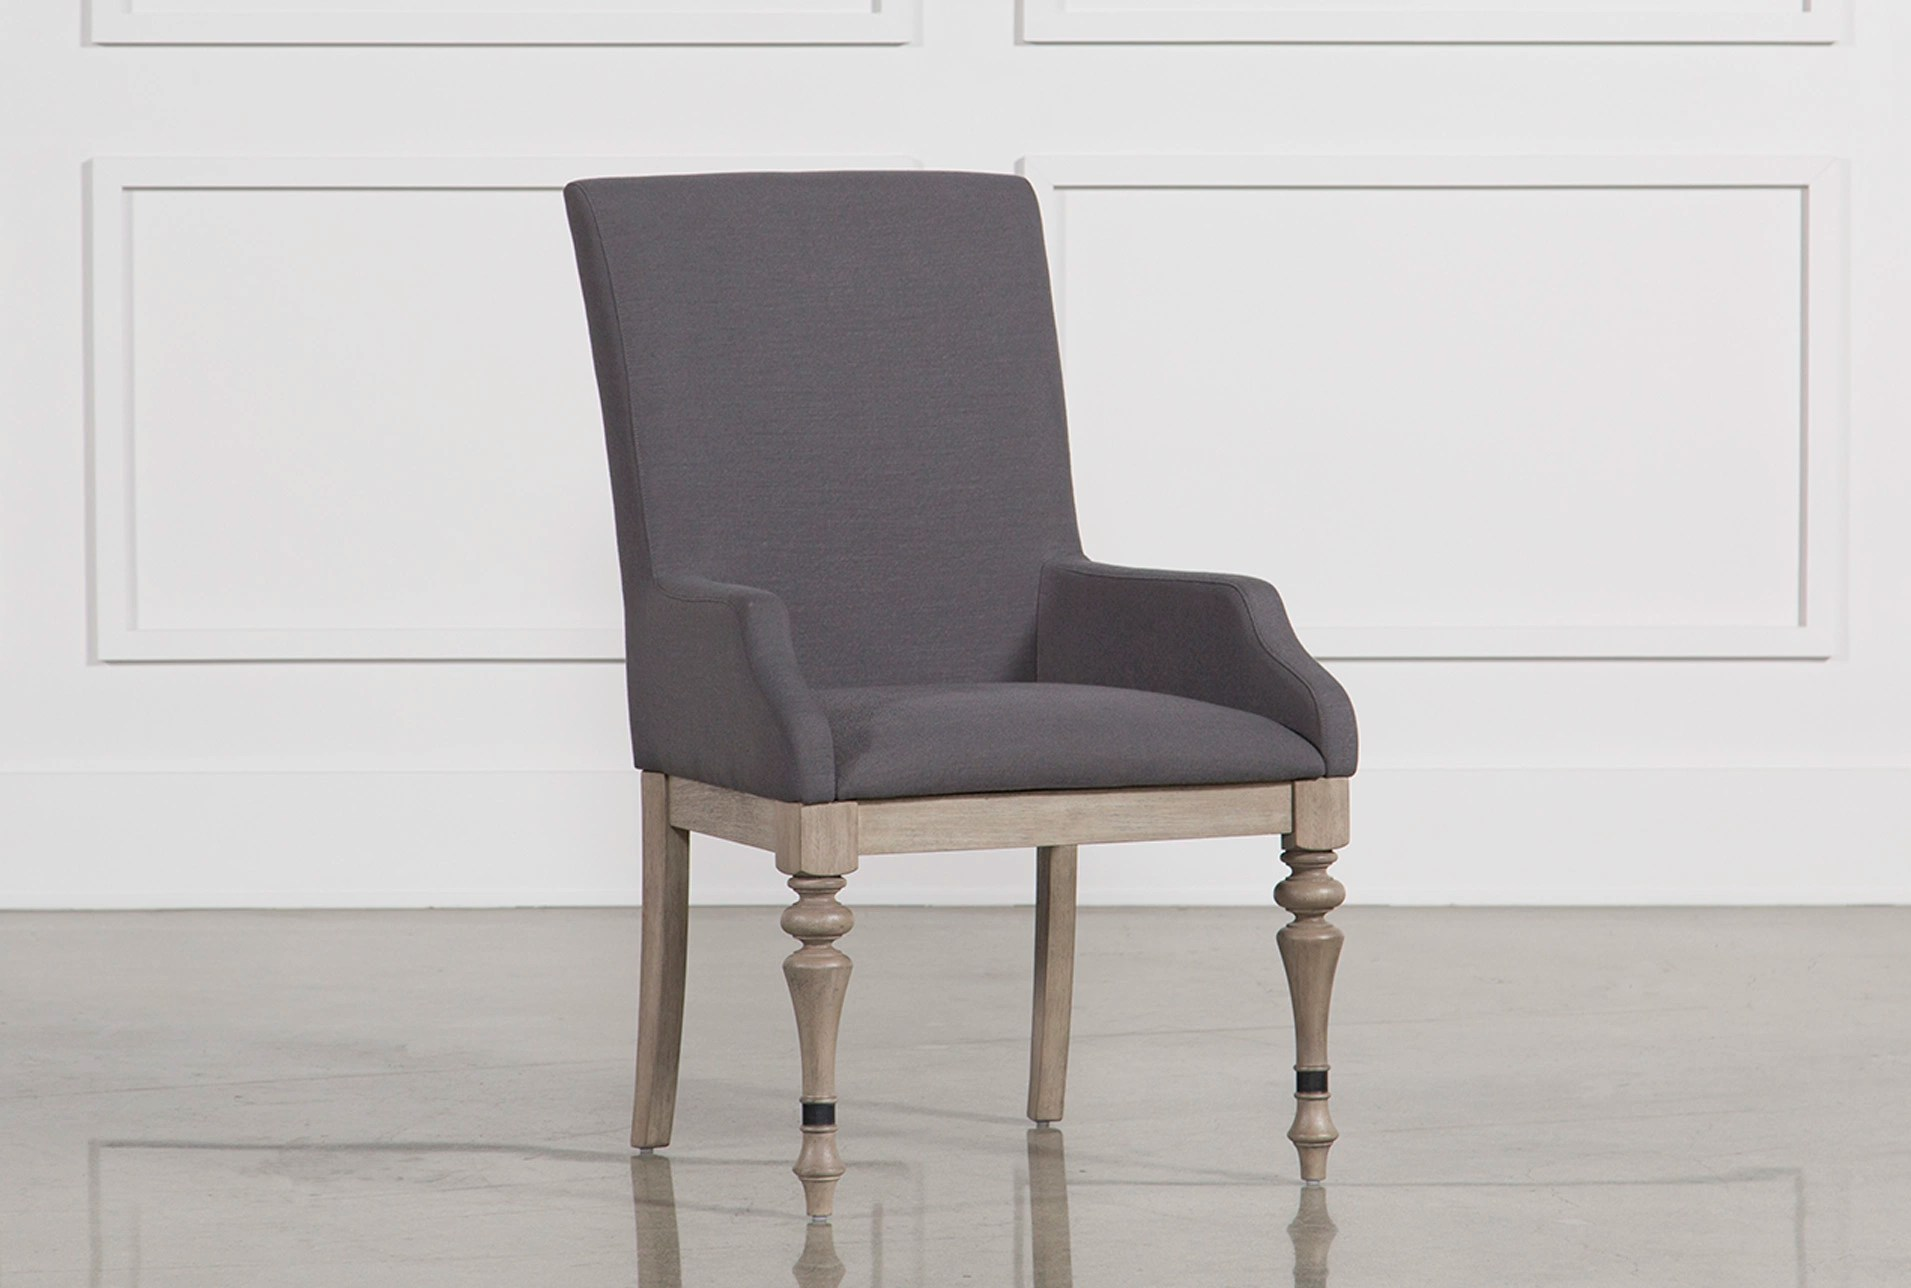 Upholstered Arm Chairs Caira Upholstered Arm Chair